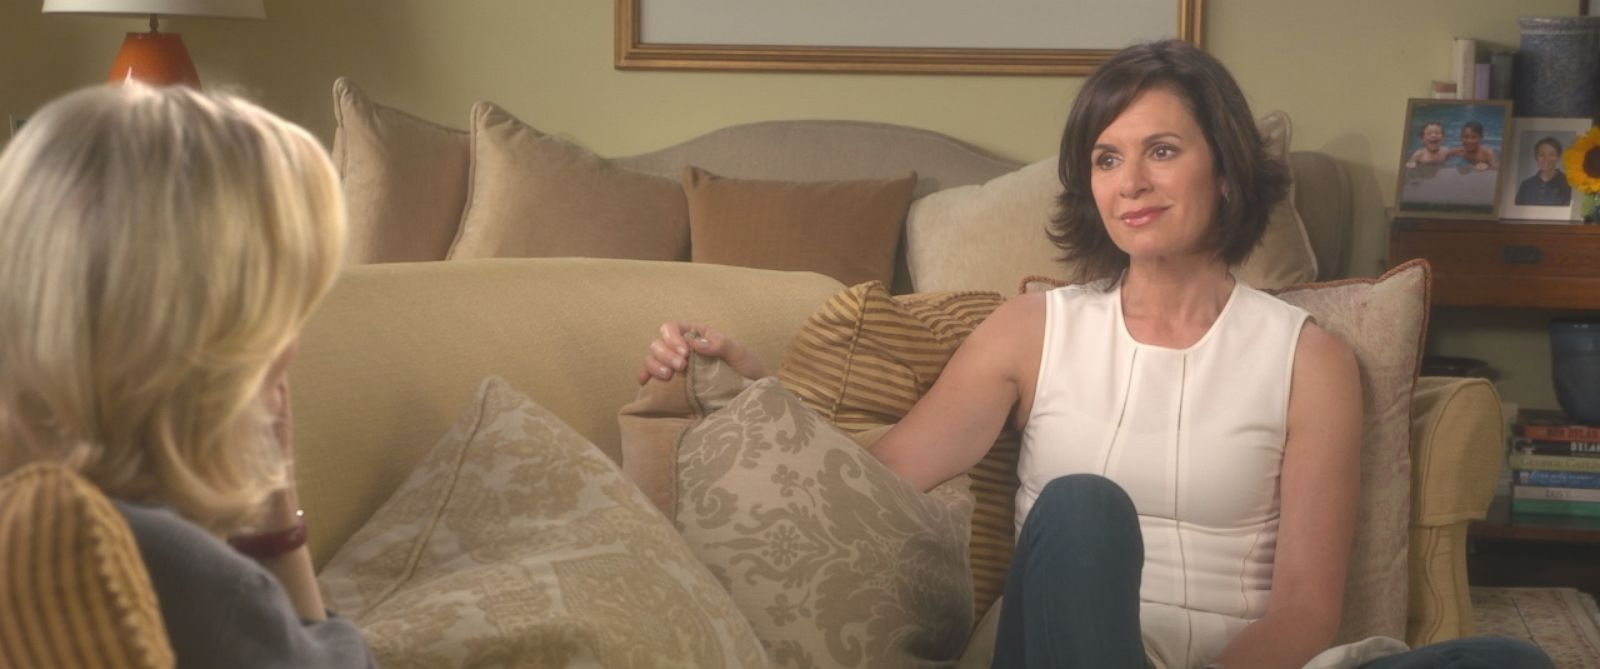 ABC News Anchor Elizabeth Vargas on Her Long Battle With Alcohol and Her Road to Recovery